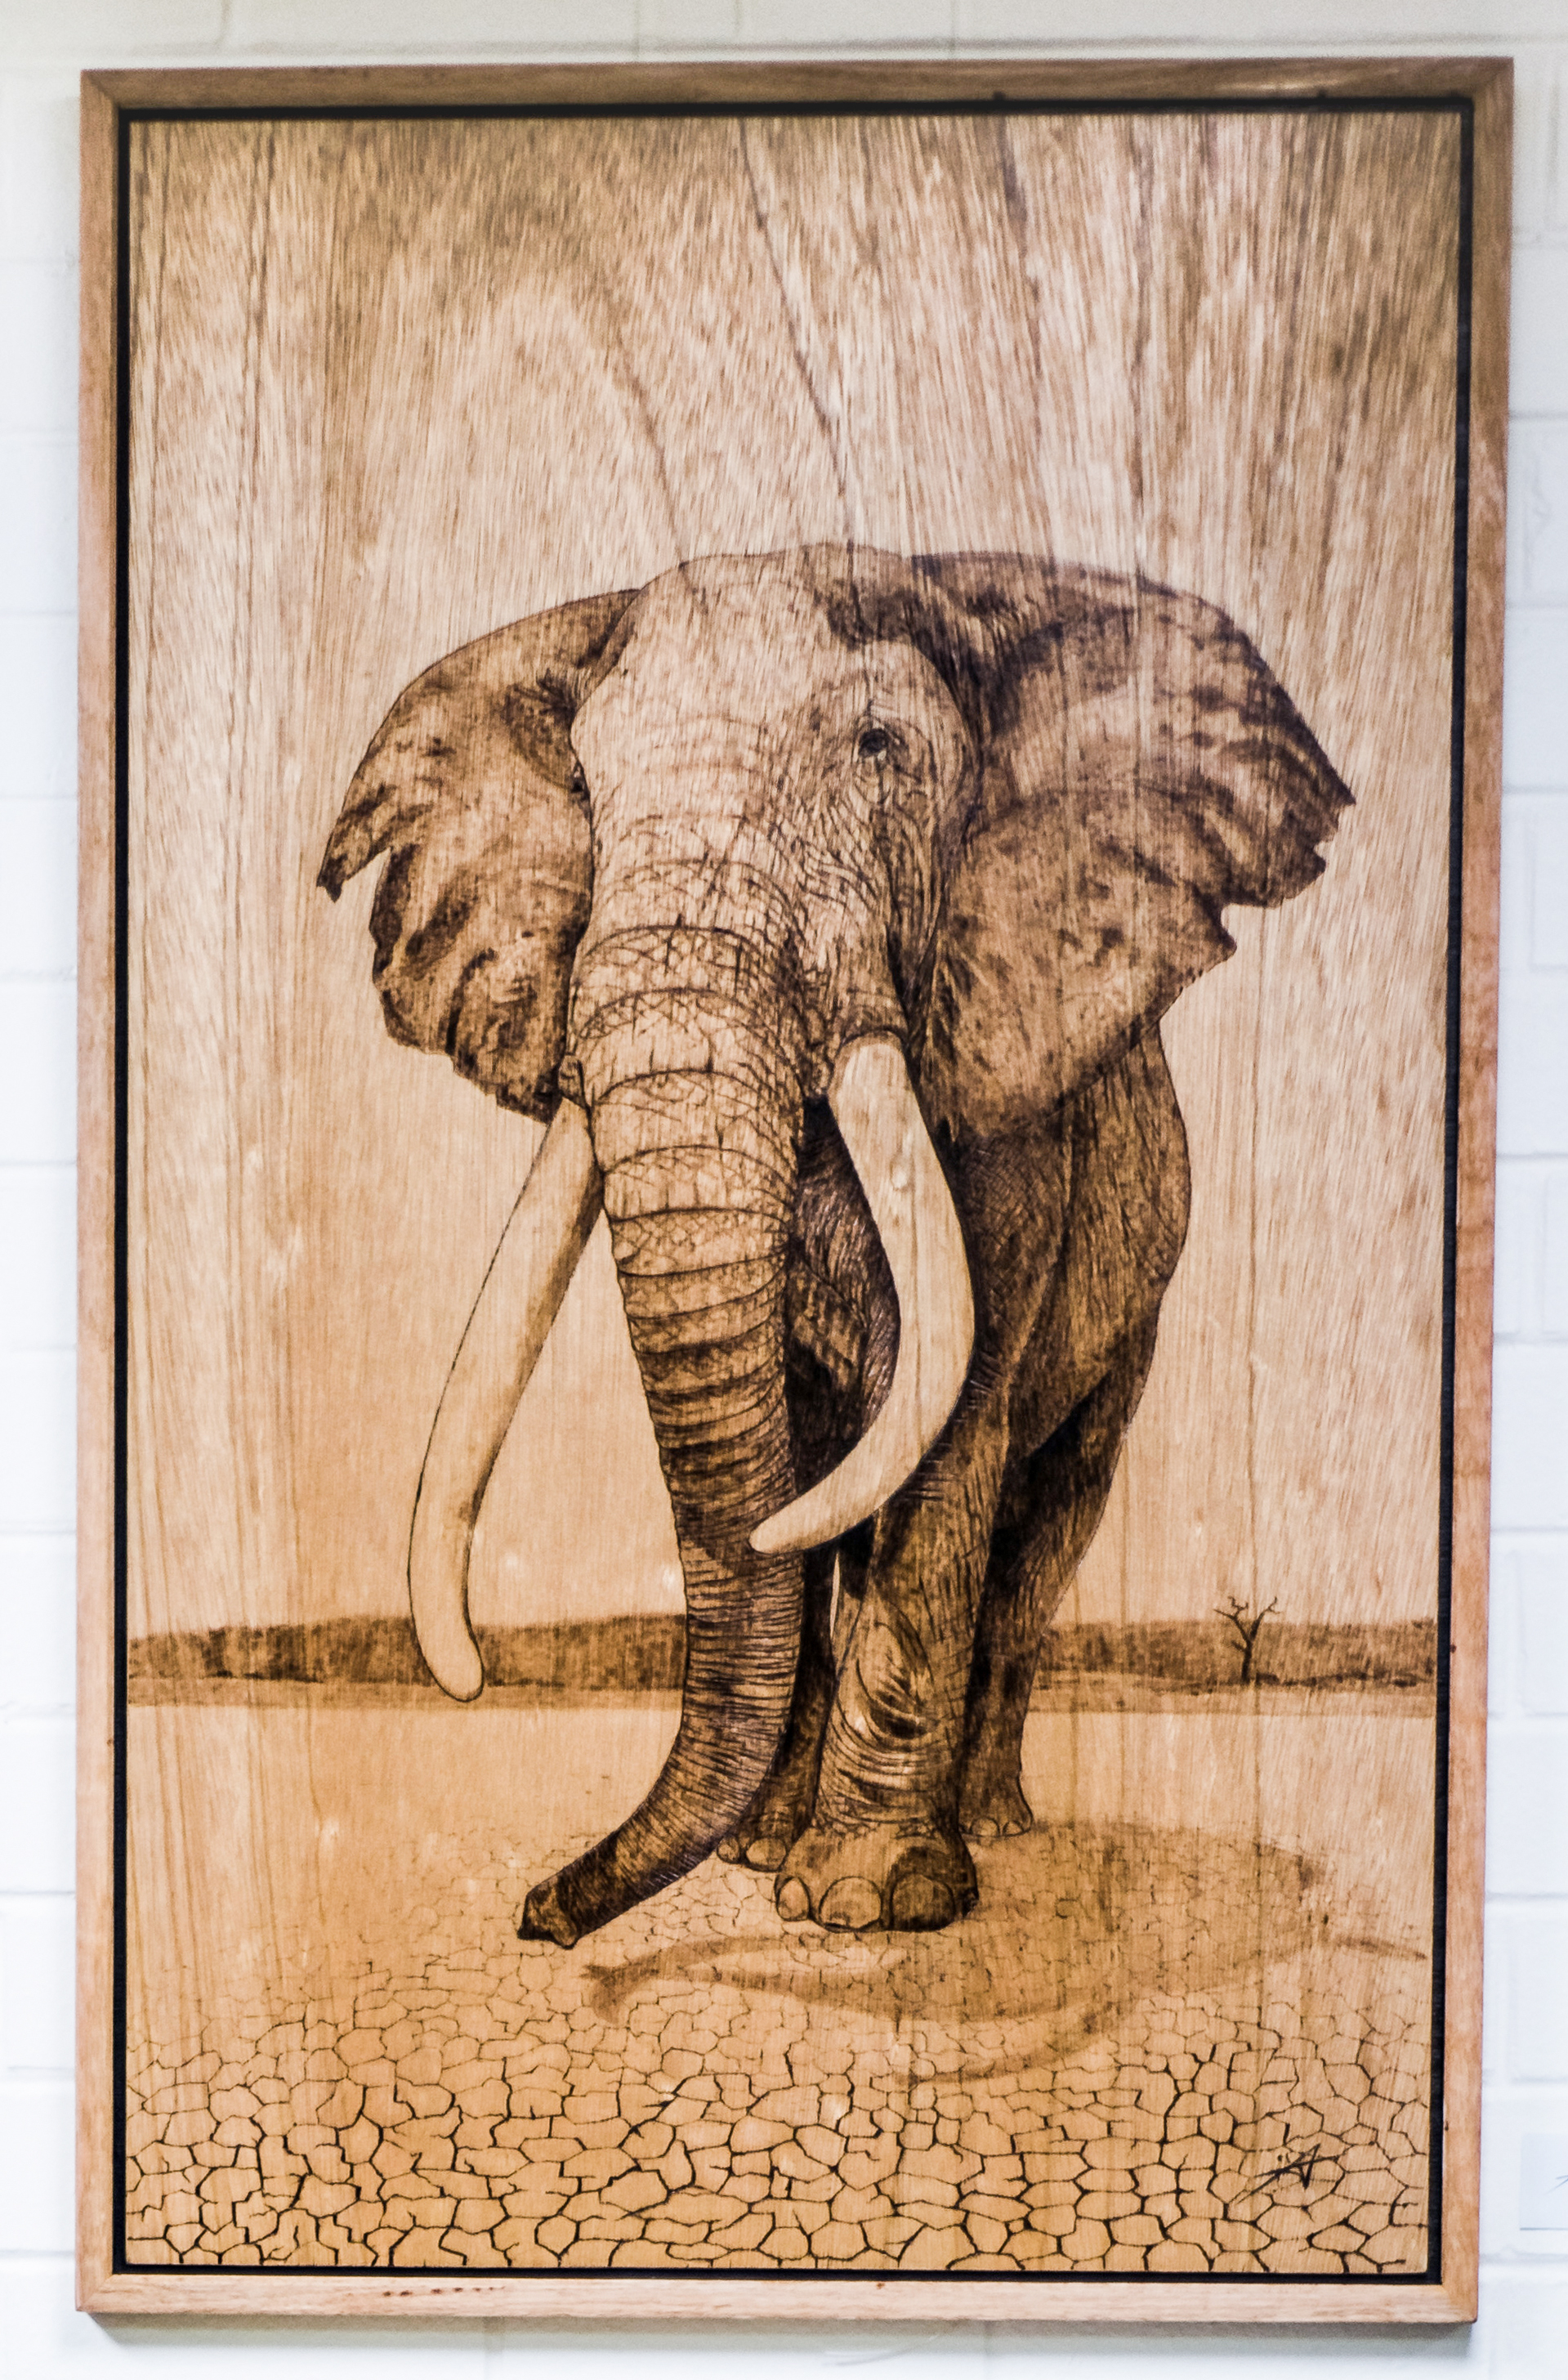 BobbieMcCain_August_2018_pyrography_66x114cm.jpg